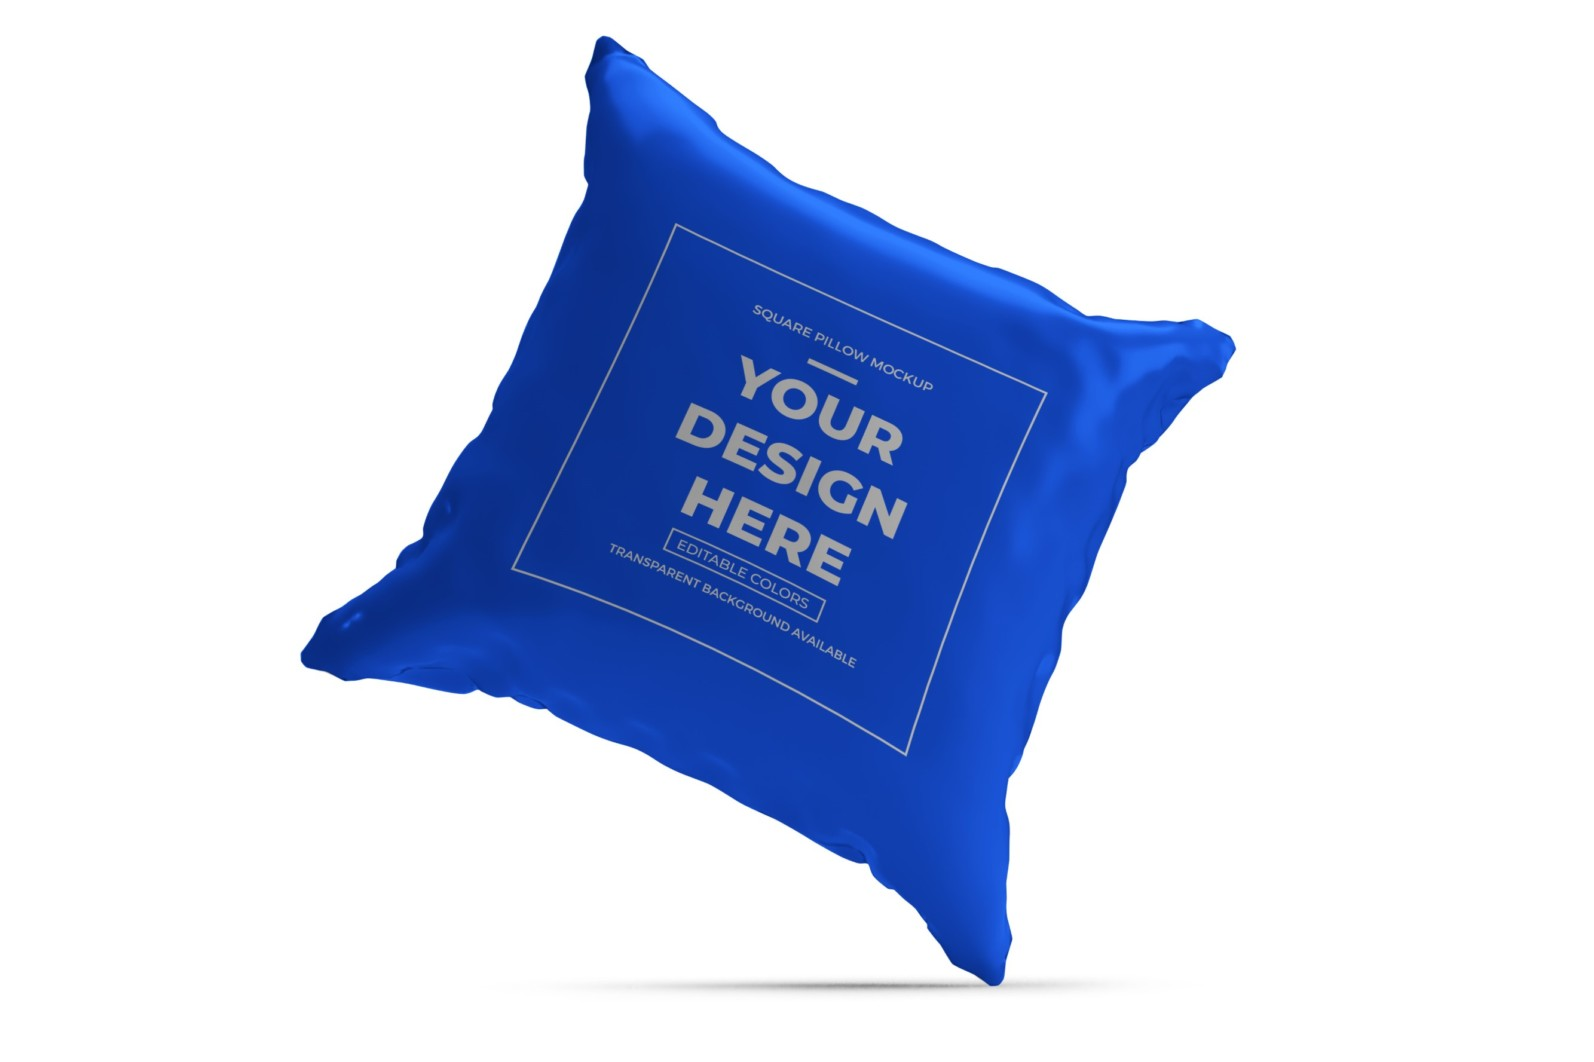 Square Pillow Mockup Template Bundle - 09 50 scaled -